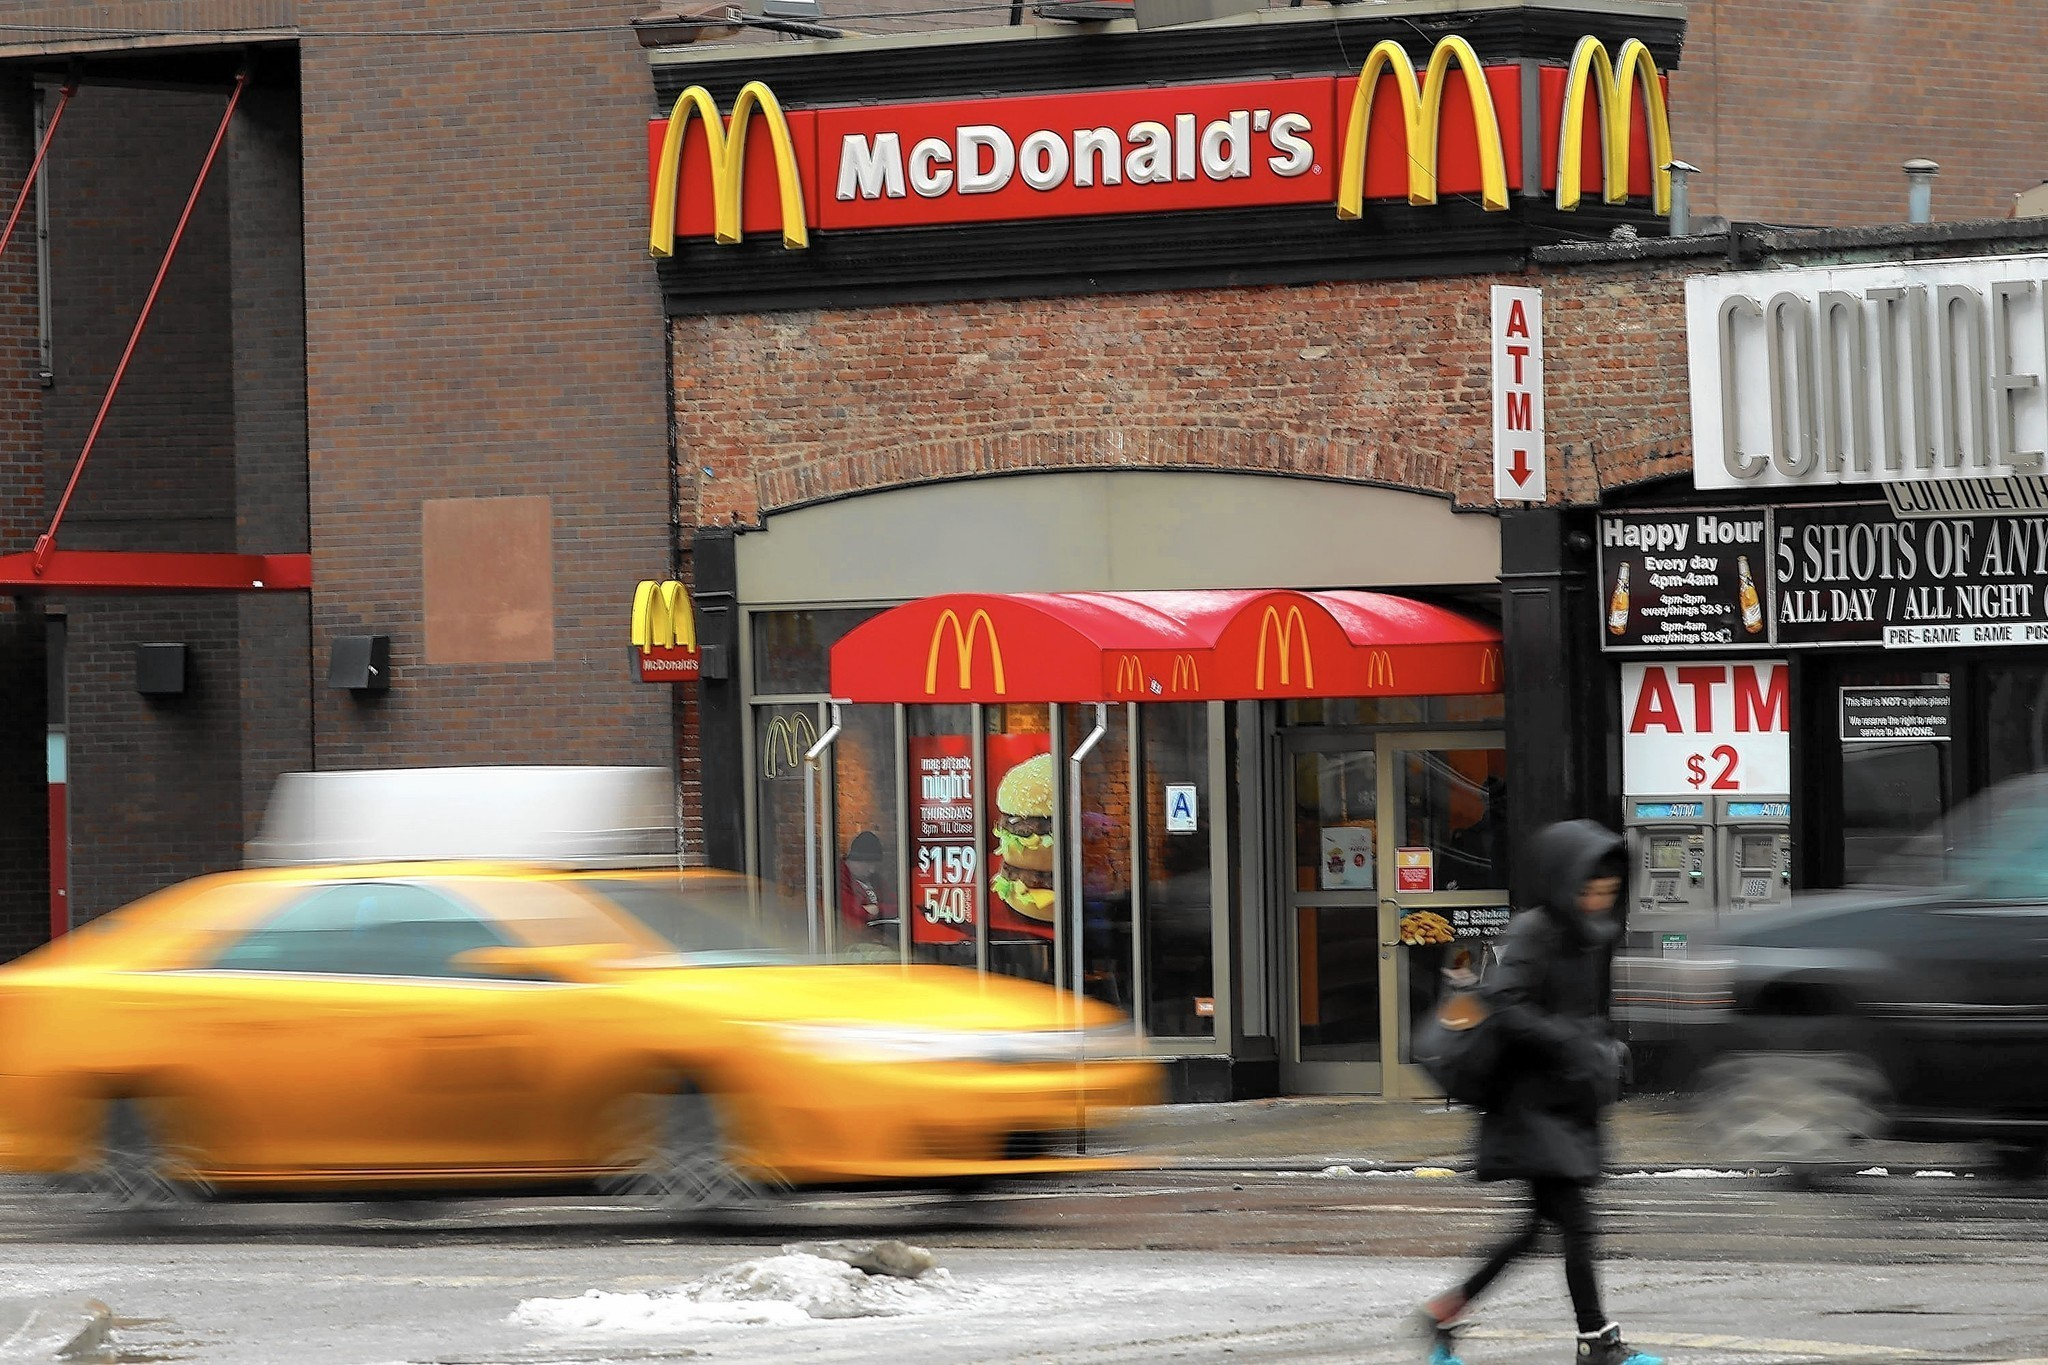 McDonald's details pullback on restaurant openings ...